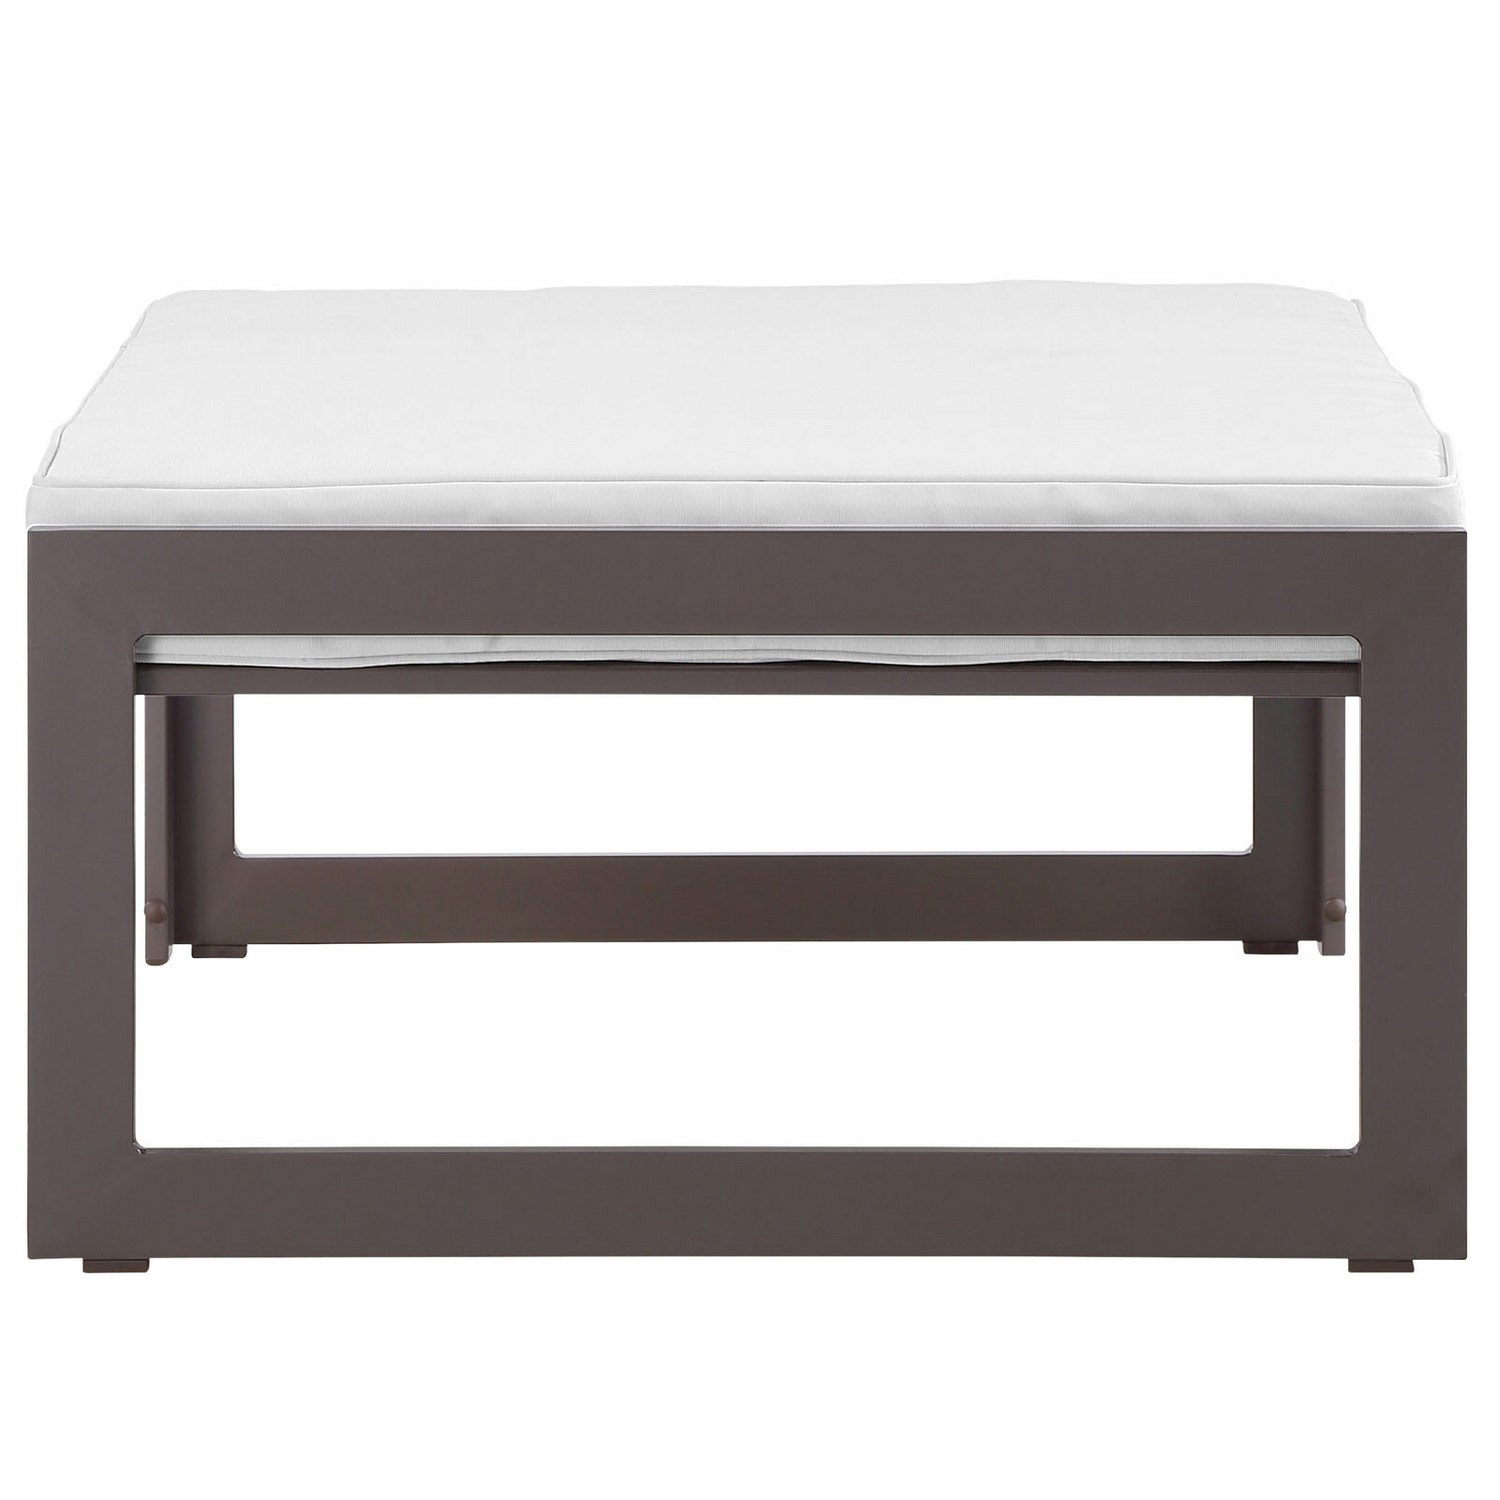 Modway Fortuna Outdoor Patio Ottoman - Brown/White